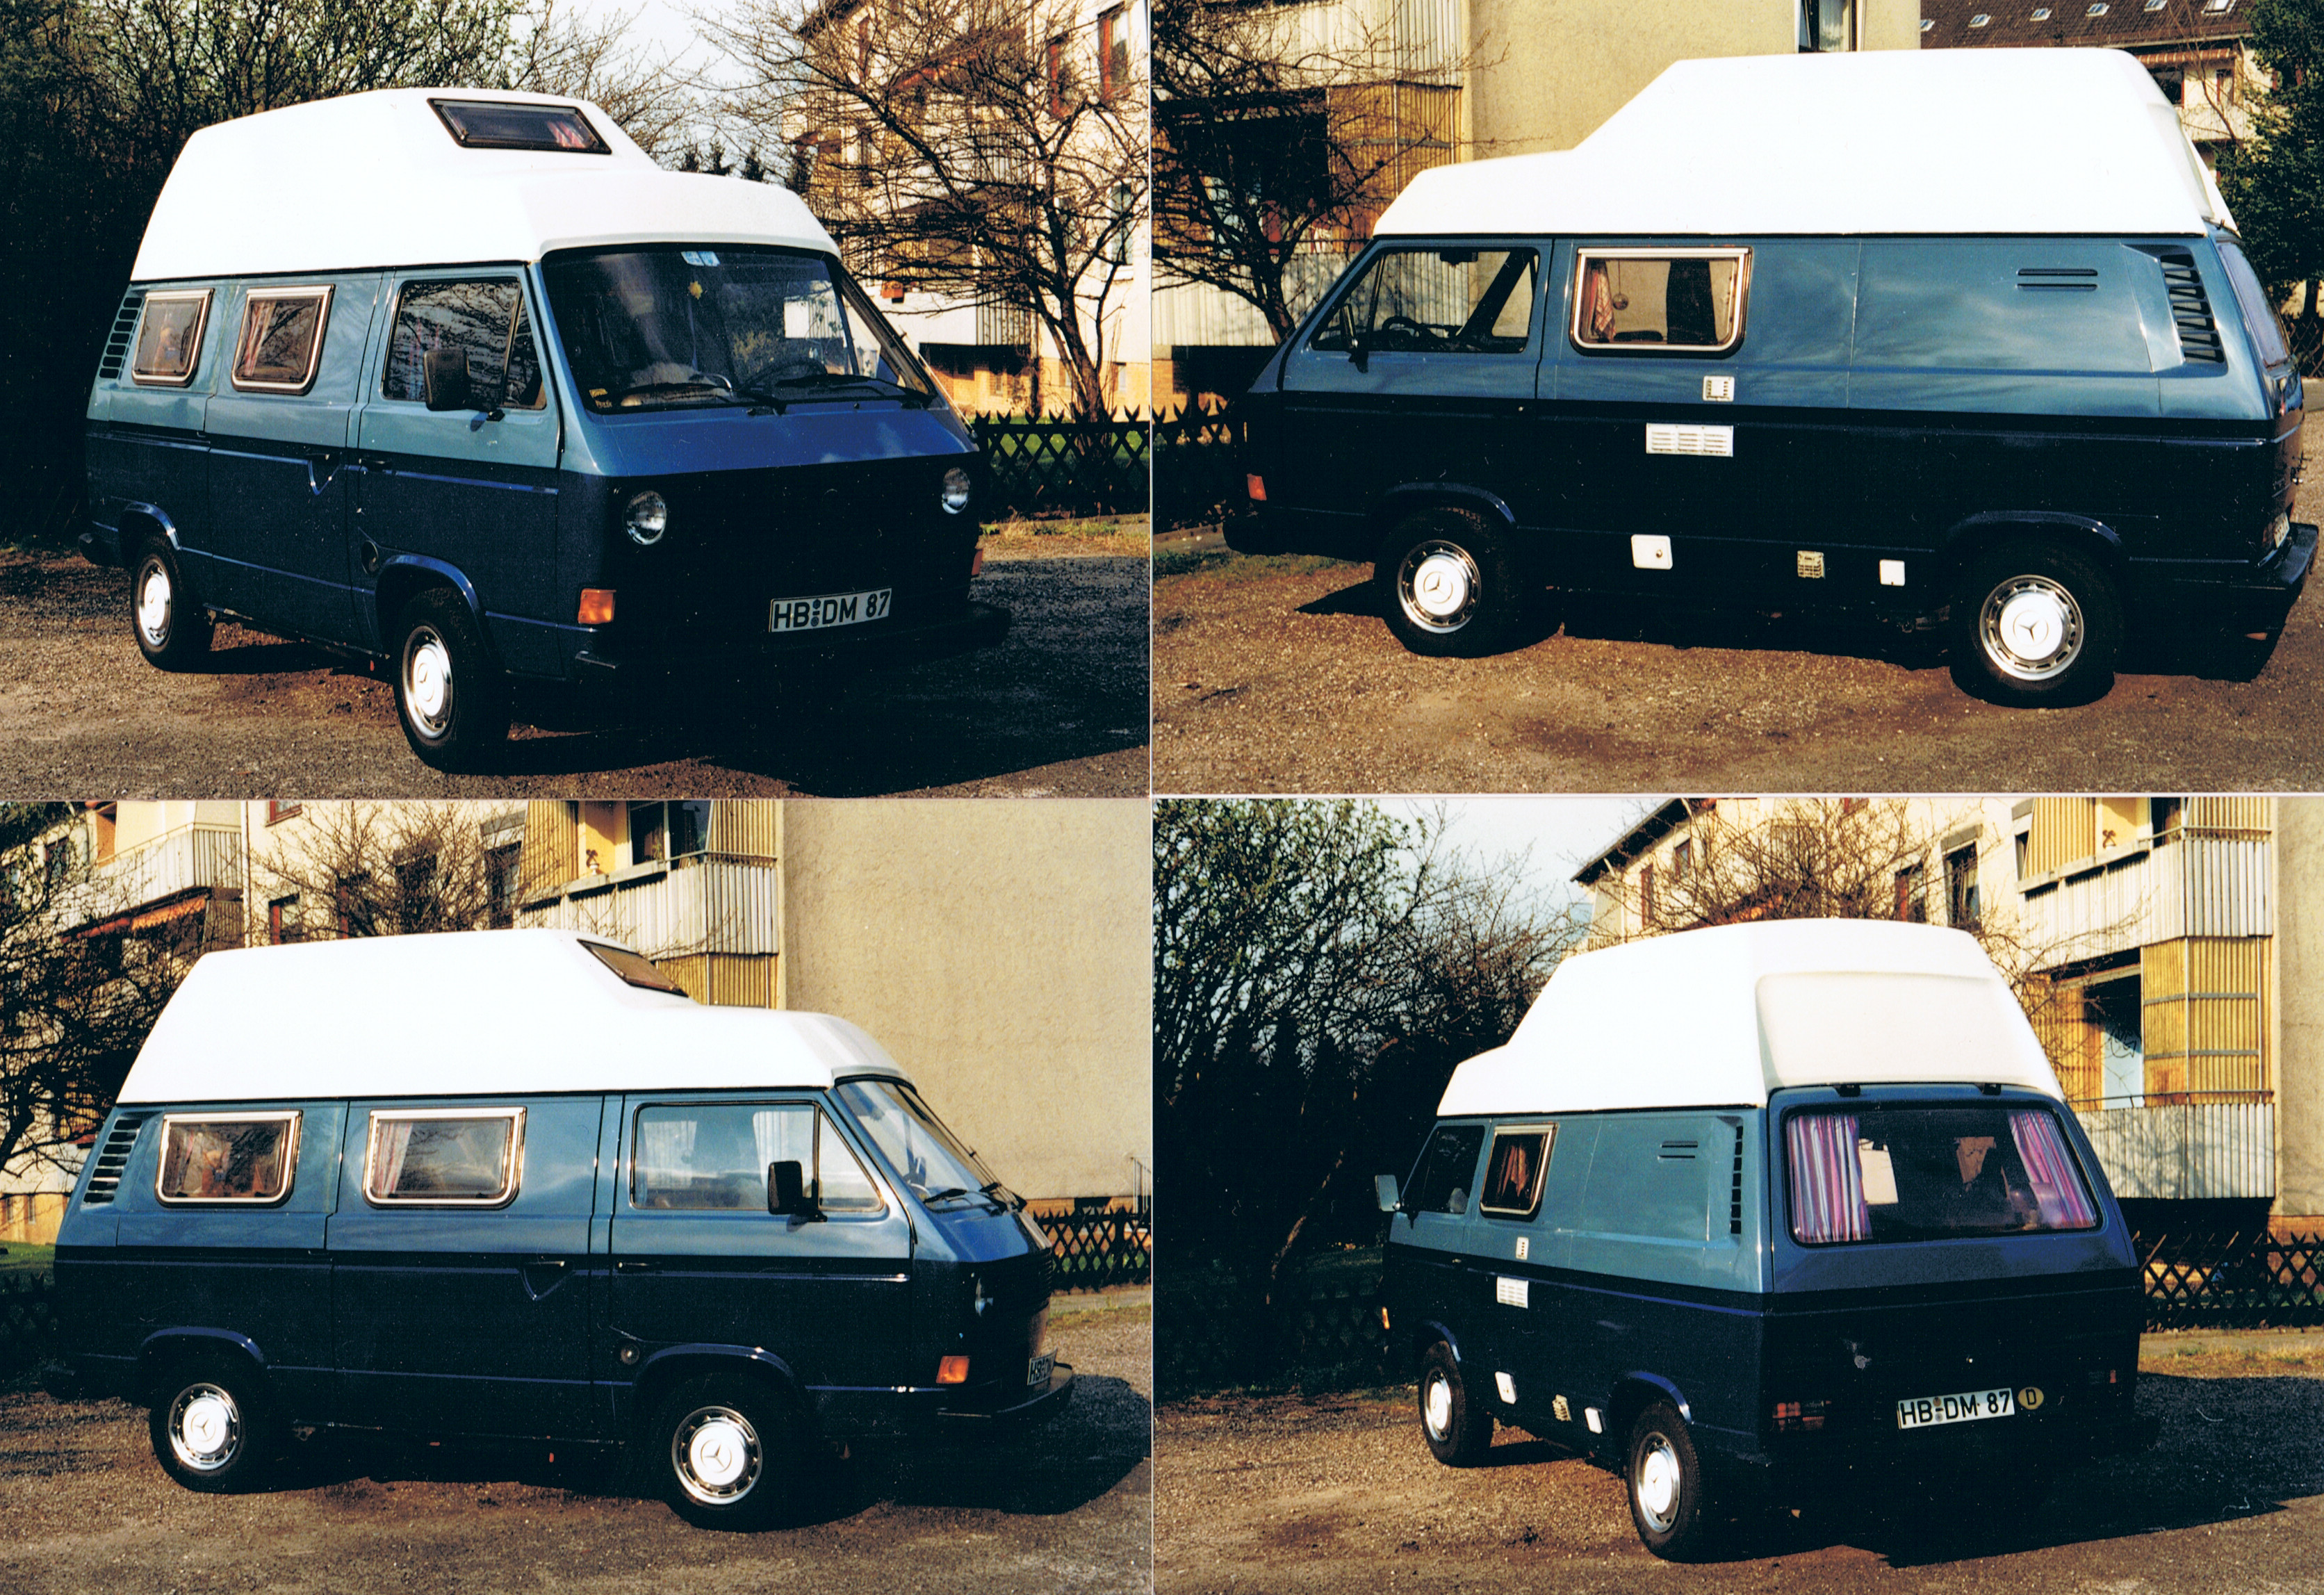 VW-Camping-Bulli-Sternenland